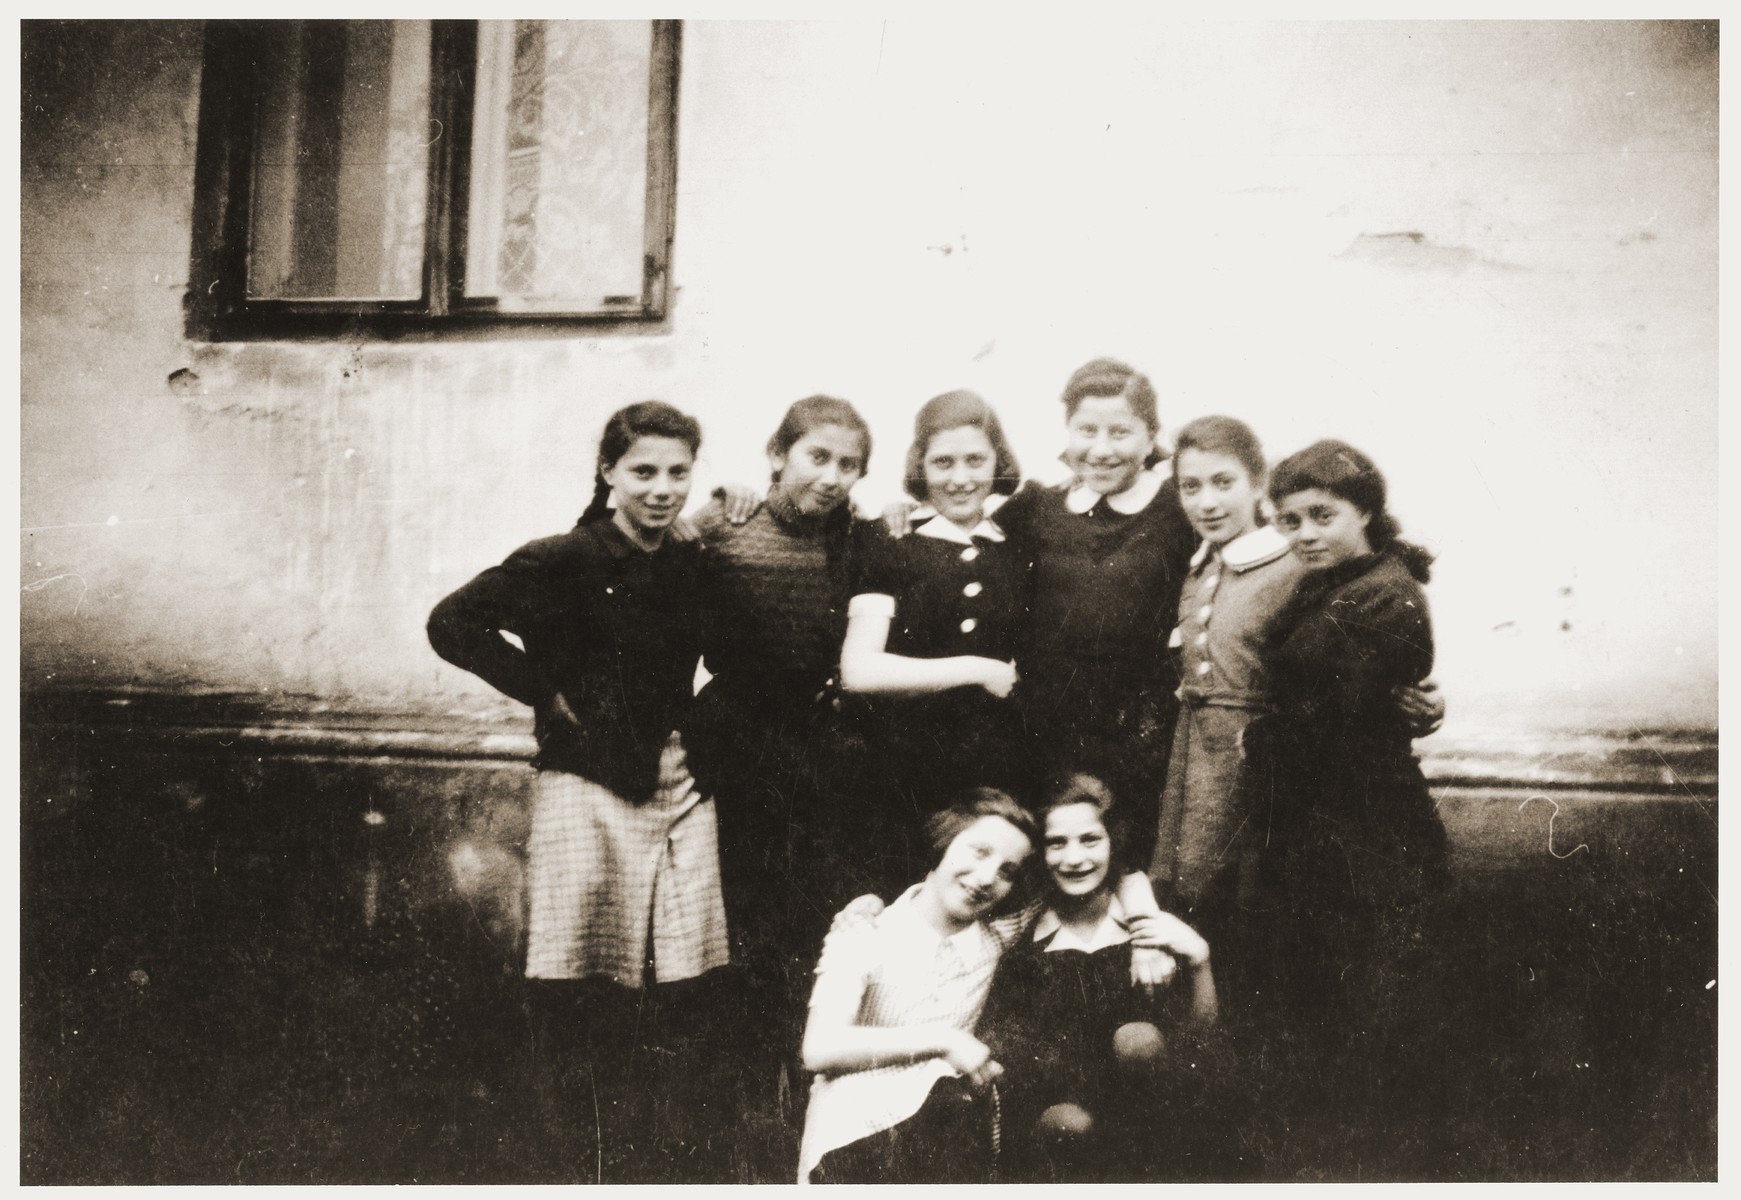 Group portrait of Jewish girls in the Zabno ghetto taken on the occasion of the twelfth birthday of Hania Goldman.  Among those pictured are Hania Goldman (bottom left) and her sister, Rachela (standing third from the right).